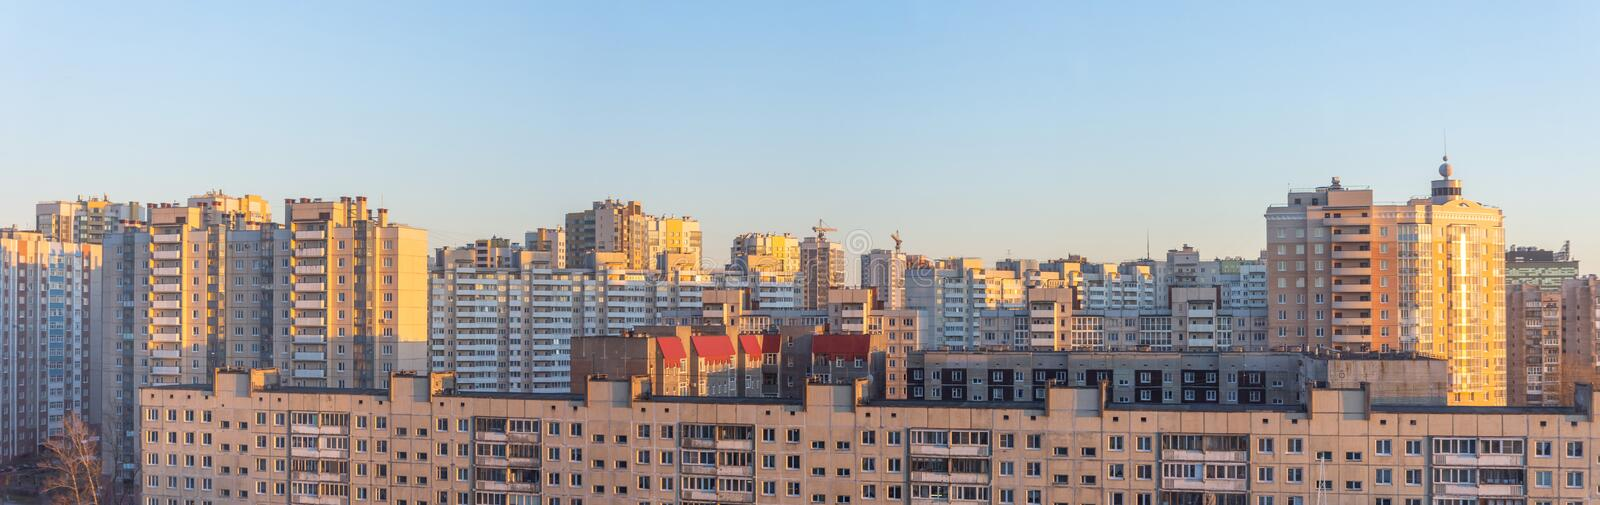 Wide panorama view of residential high-rise buildings, in the evening at sunset.  royalty free stock photography